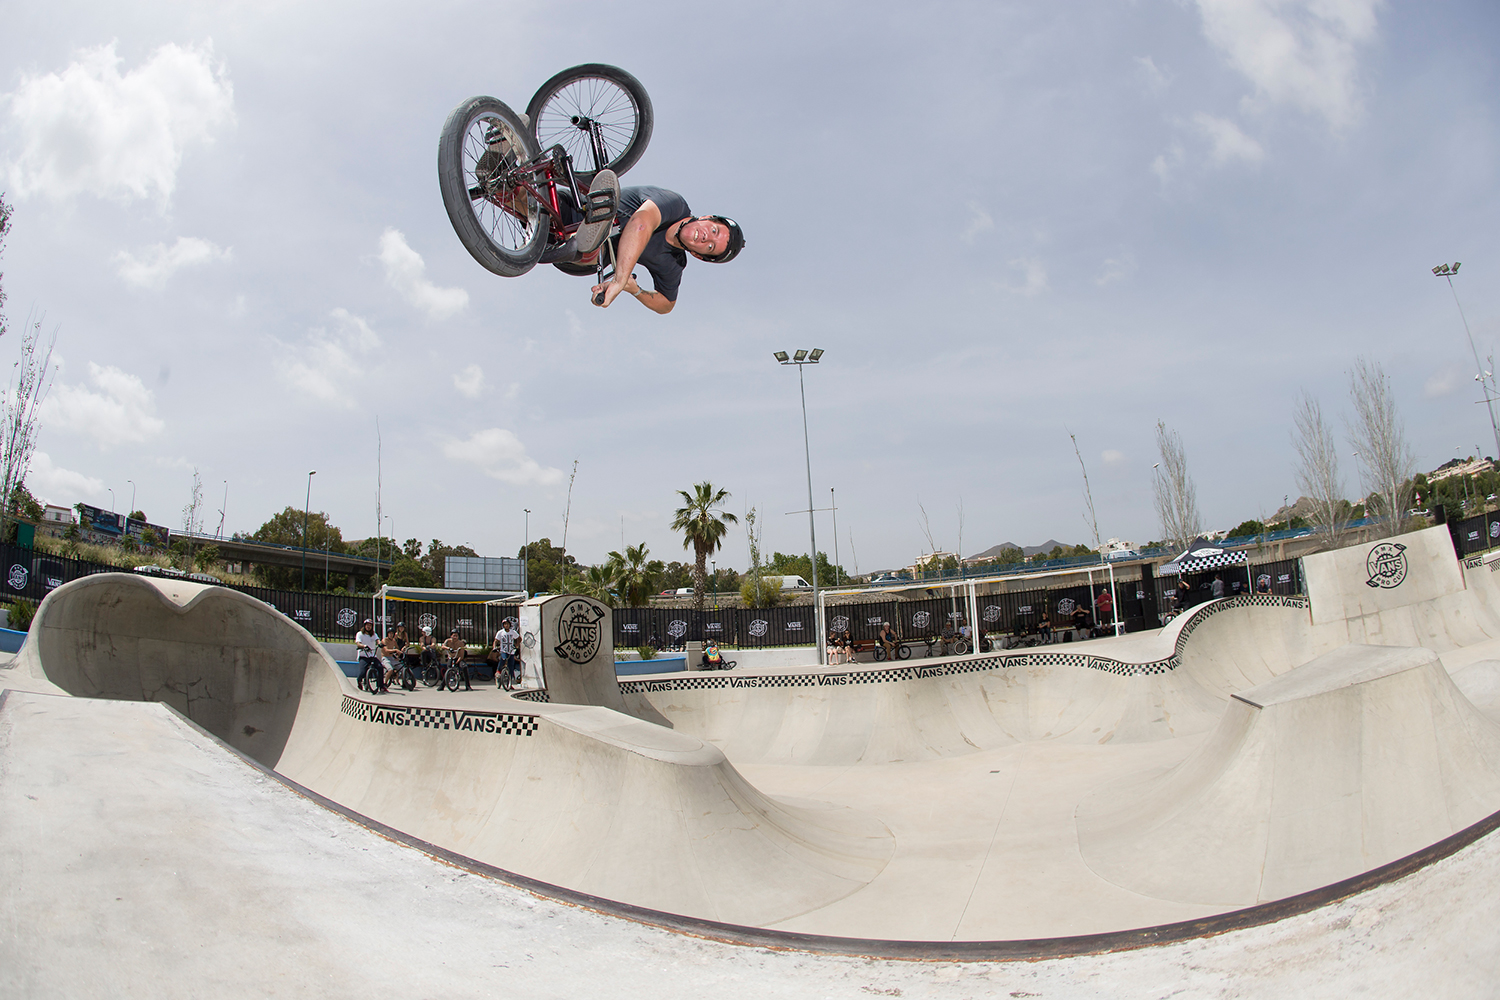 156077c50f ... now for the Vans BMX Pro Cup. Looking forward to seeing all the footage  in the coming days. Here are a few photos courtesy of Colin Mackay along  with a ...